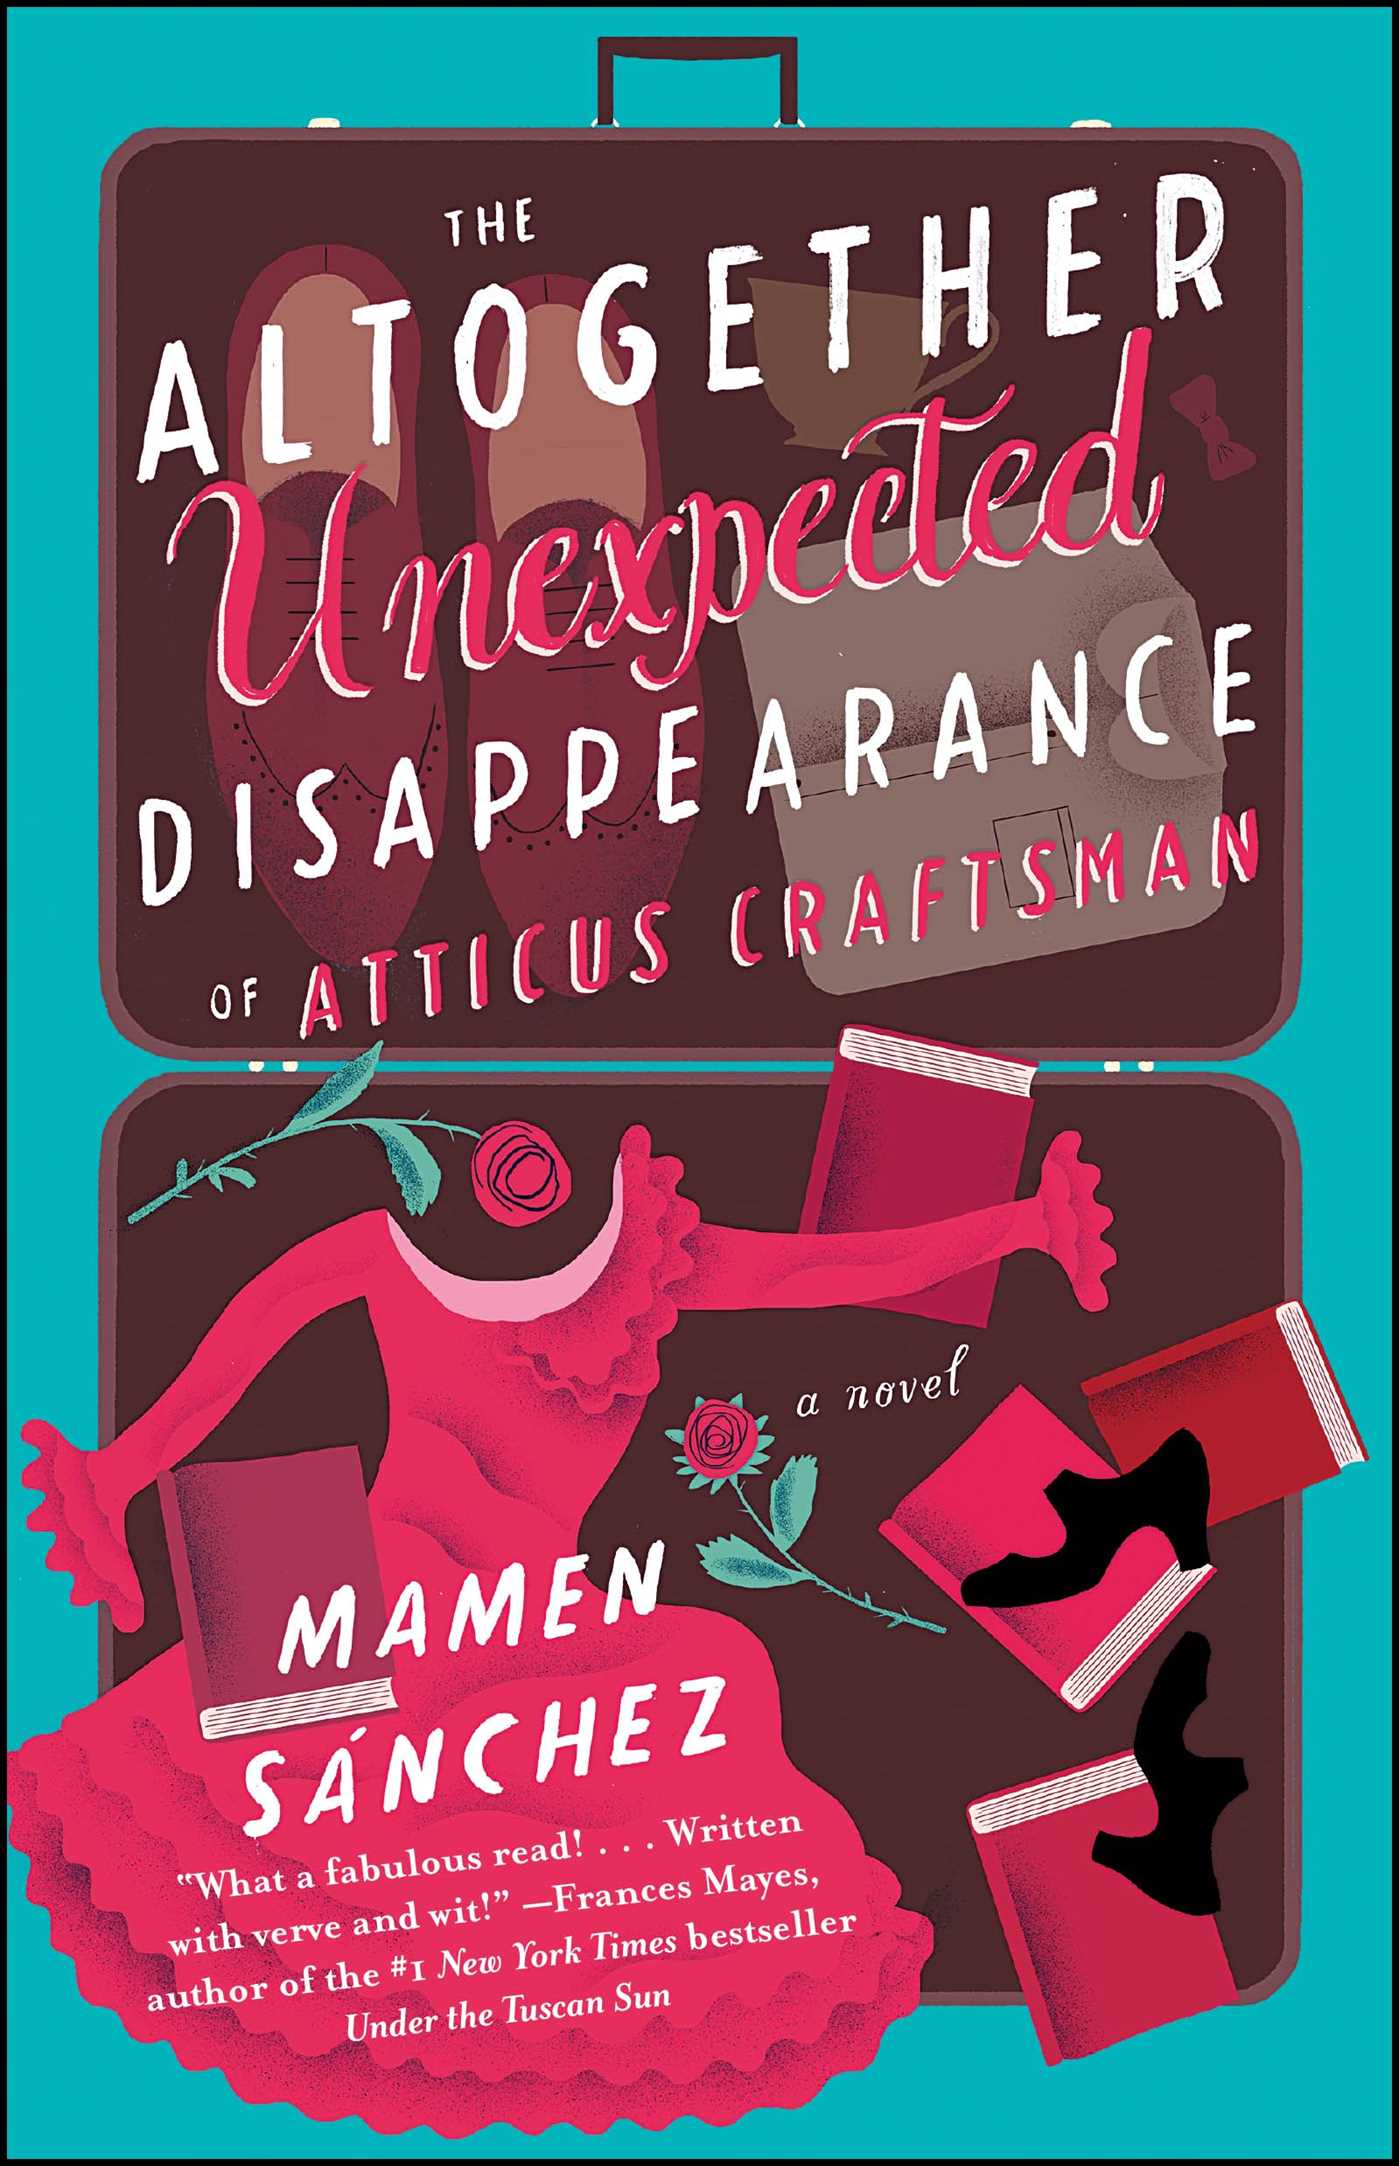 The altogether unexpected disappearance of atticus craftsman 9781501118883 hr